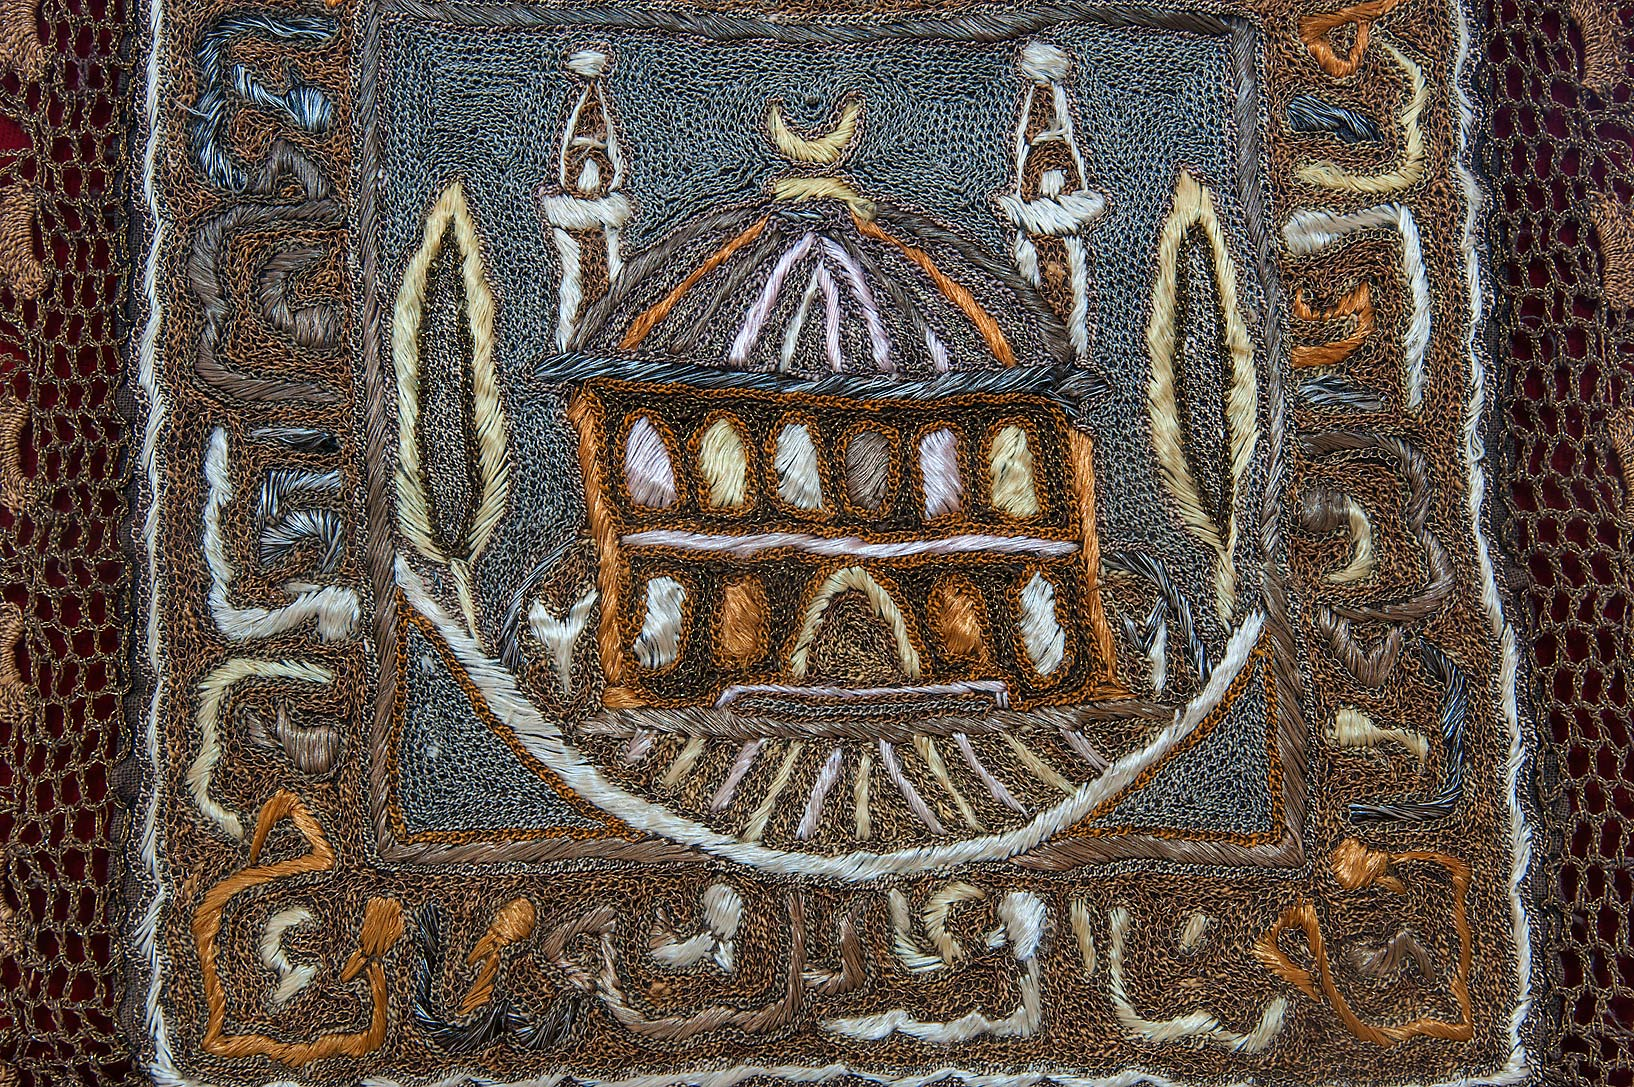 Mosque on embroidery in Sheikh Faisal Bin Qassim...Museum near Al-Shahaniya. Doha, Qatar